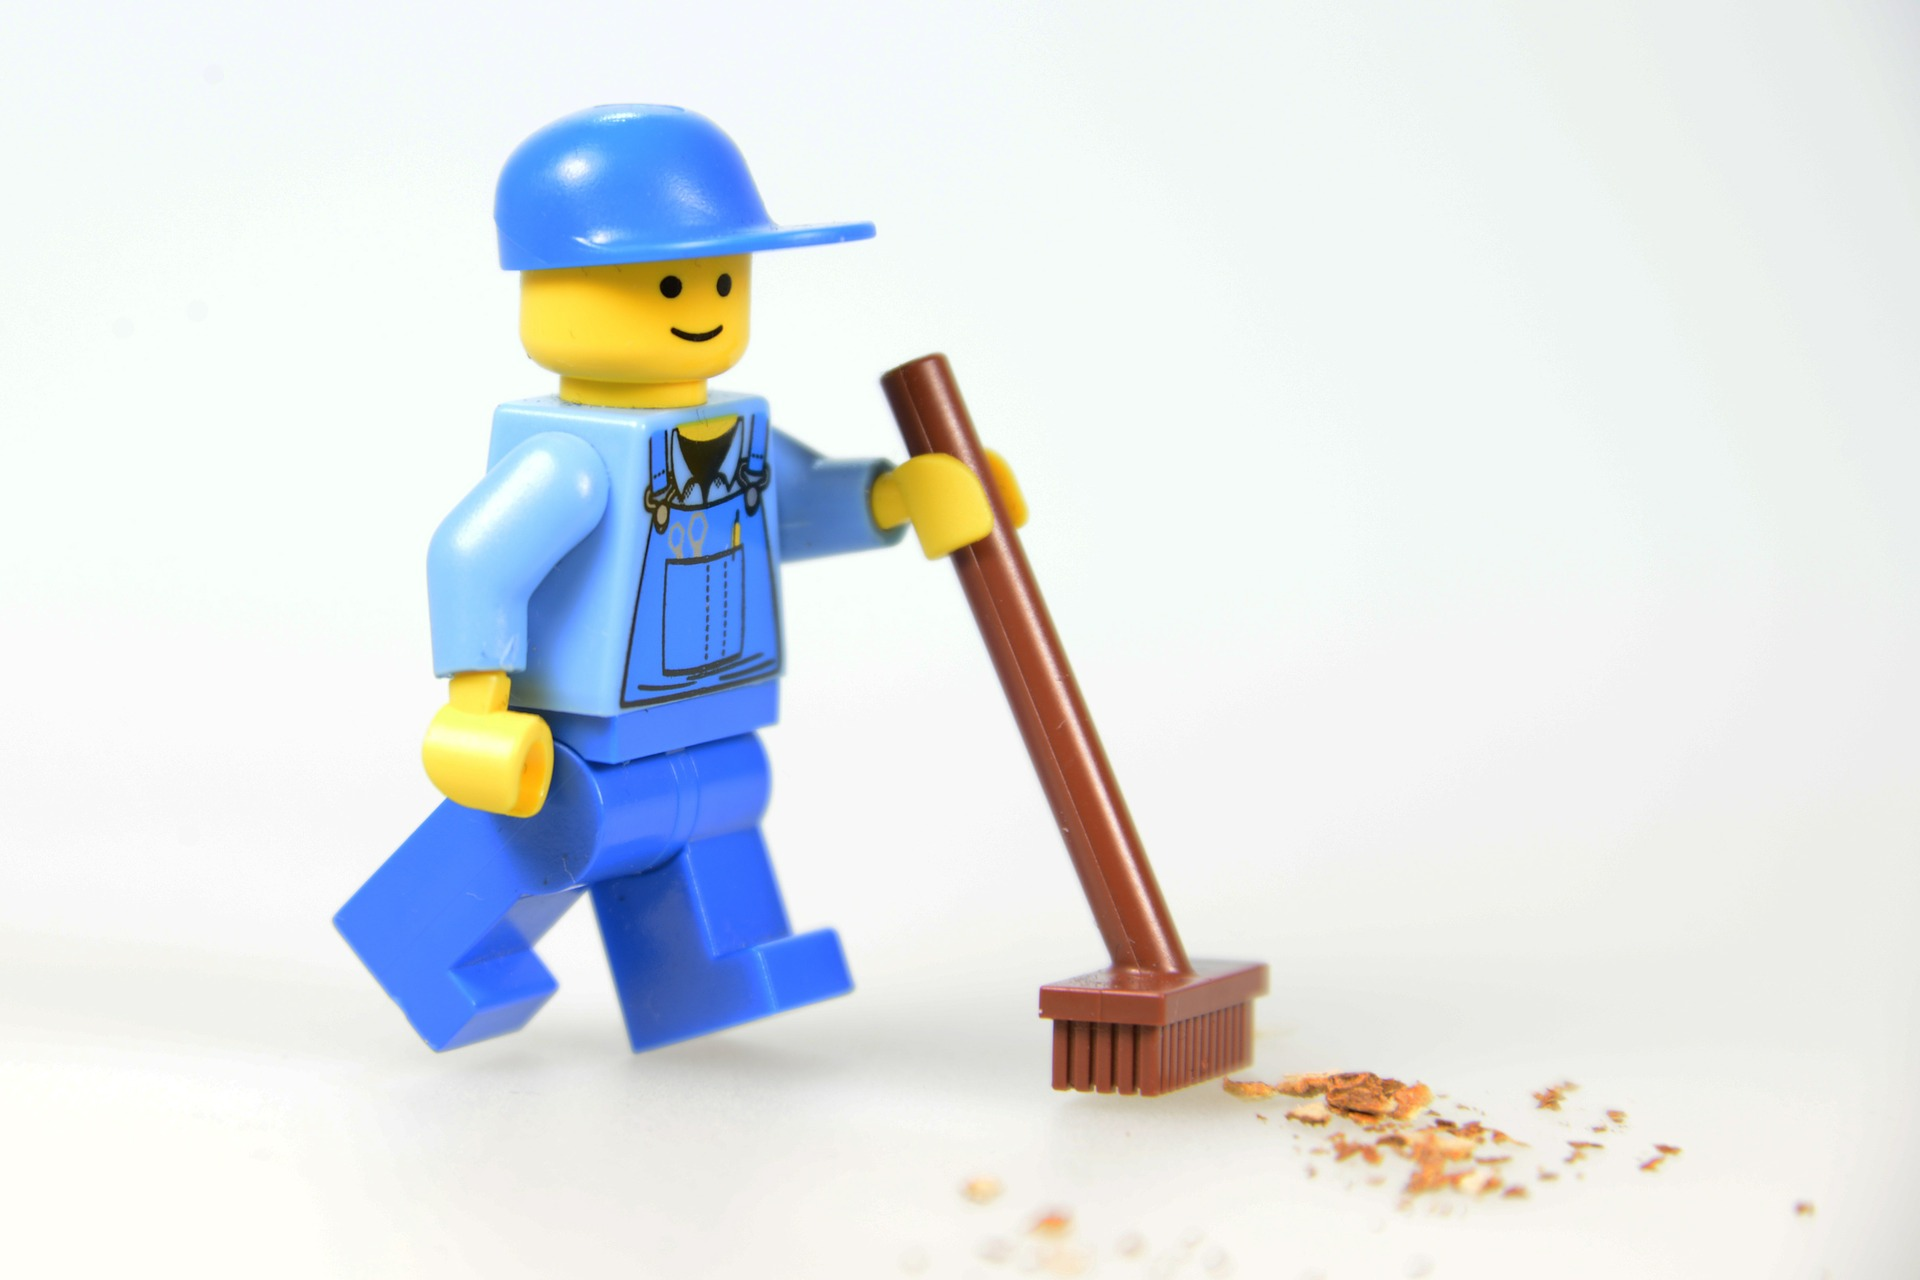 Lego man cleaning